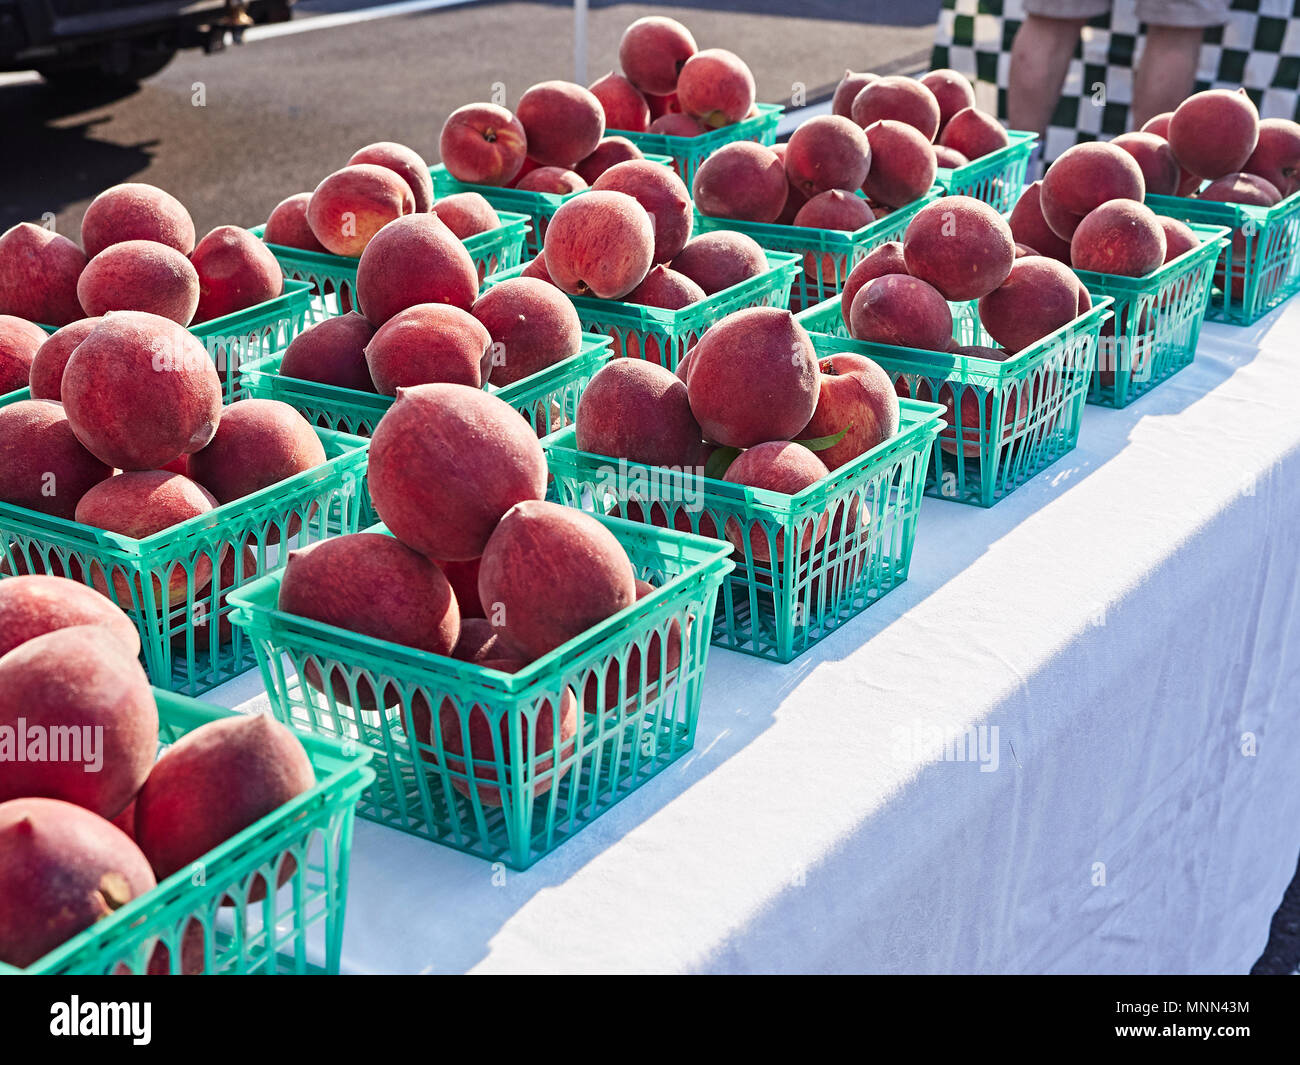 Ripe, fresh picked Chilton County peaches on display in baskets at a roadside farmers market in Alabama, USA. - Stock Image